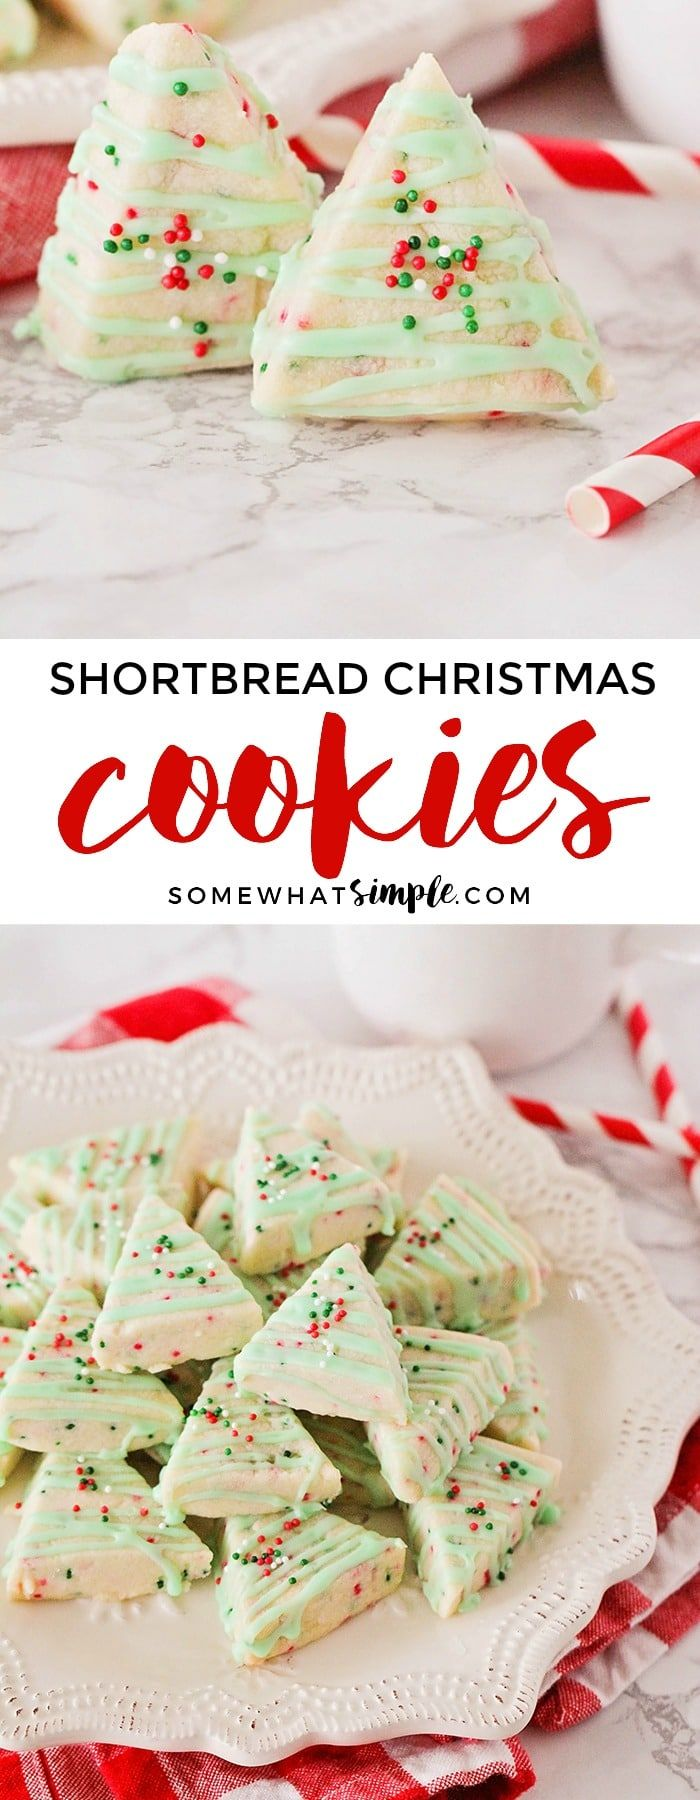 1186 best Holiday Recipes and Ideas images on Pinterest | Christmas ...